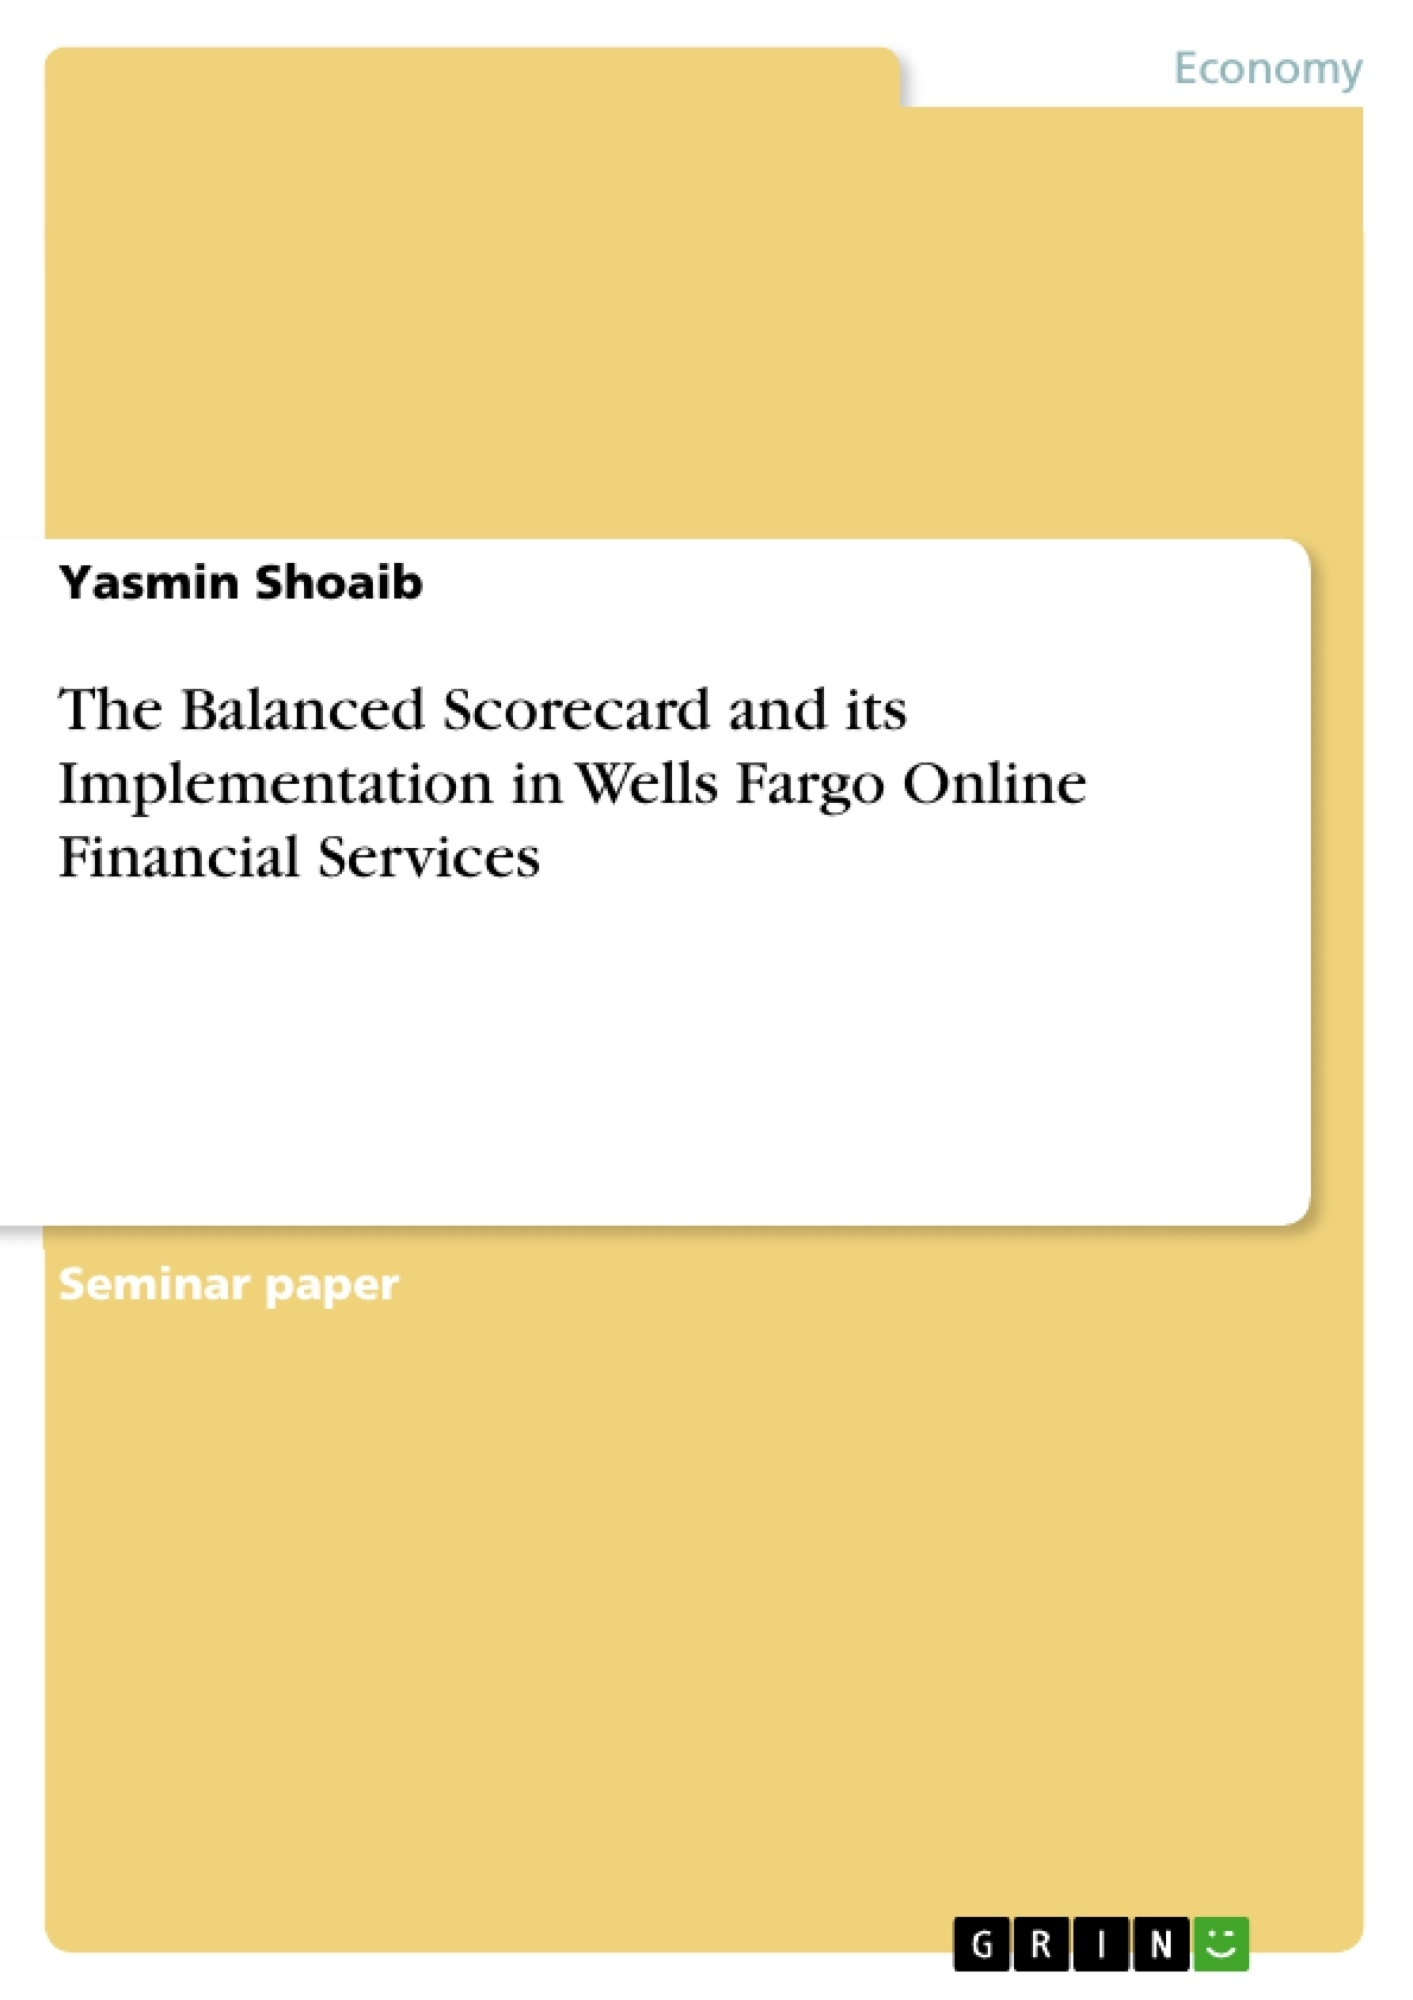 Title: The Balanced Scorecard and its Implementation in Wells Fargo Online Financial Services